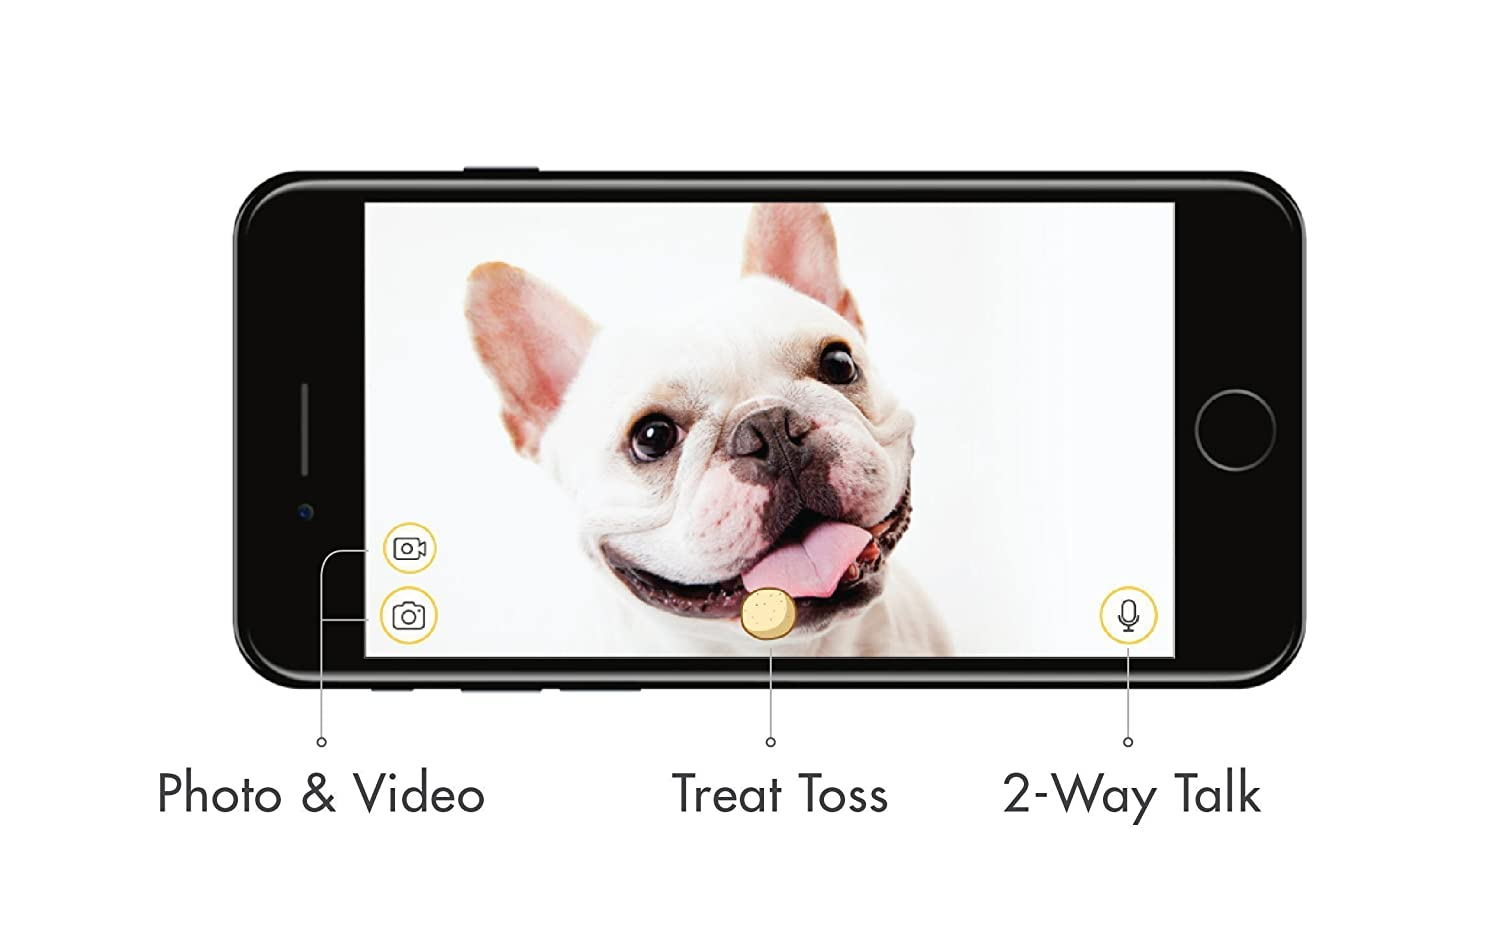 pet camera reviews : Furbo - App